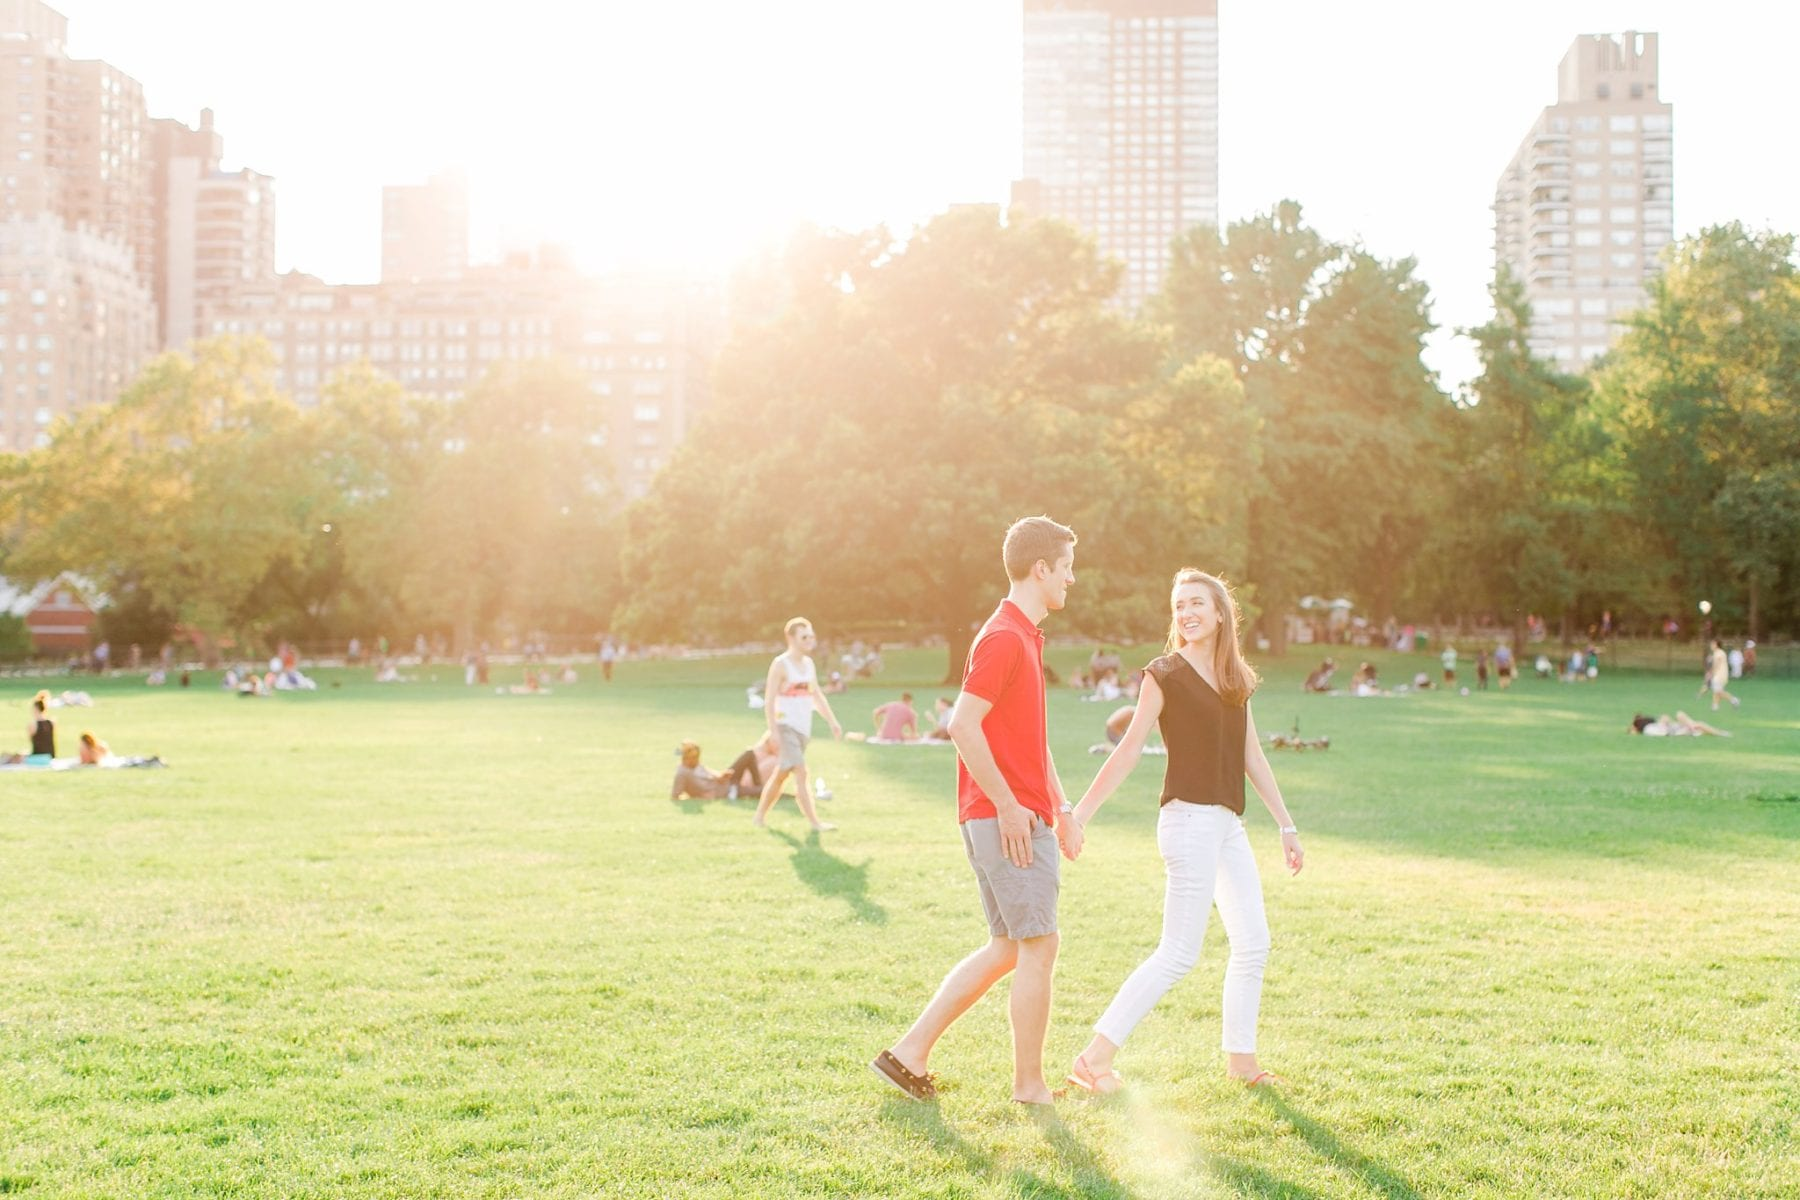 West Village Central Park Engagement Photos NYC Wedding Photographer Megan Kelsey Photography-211.jpg